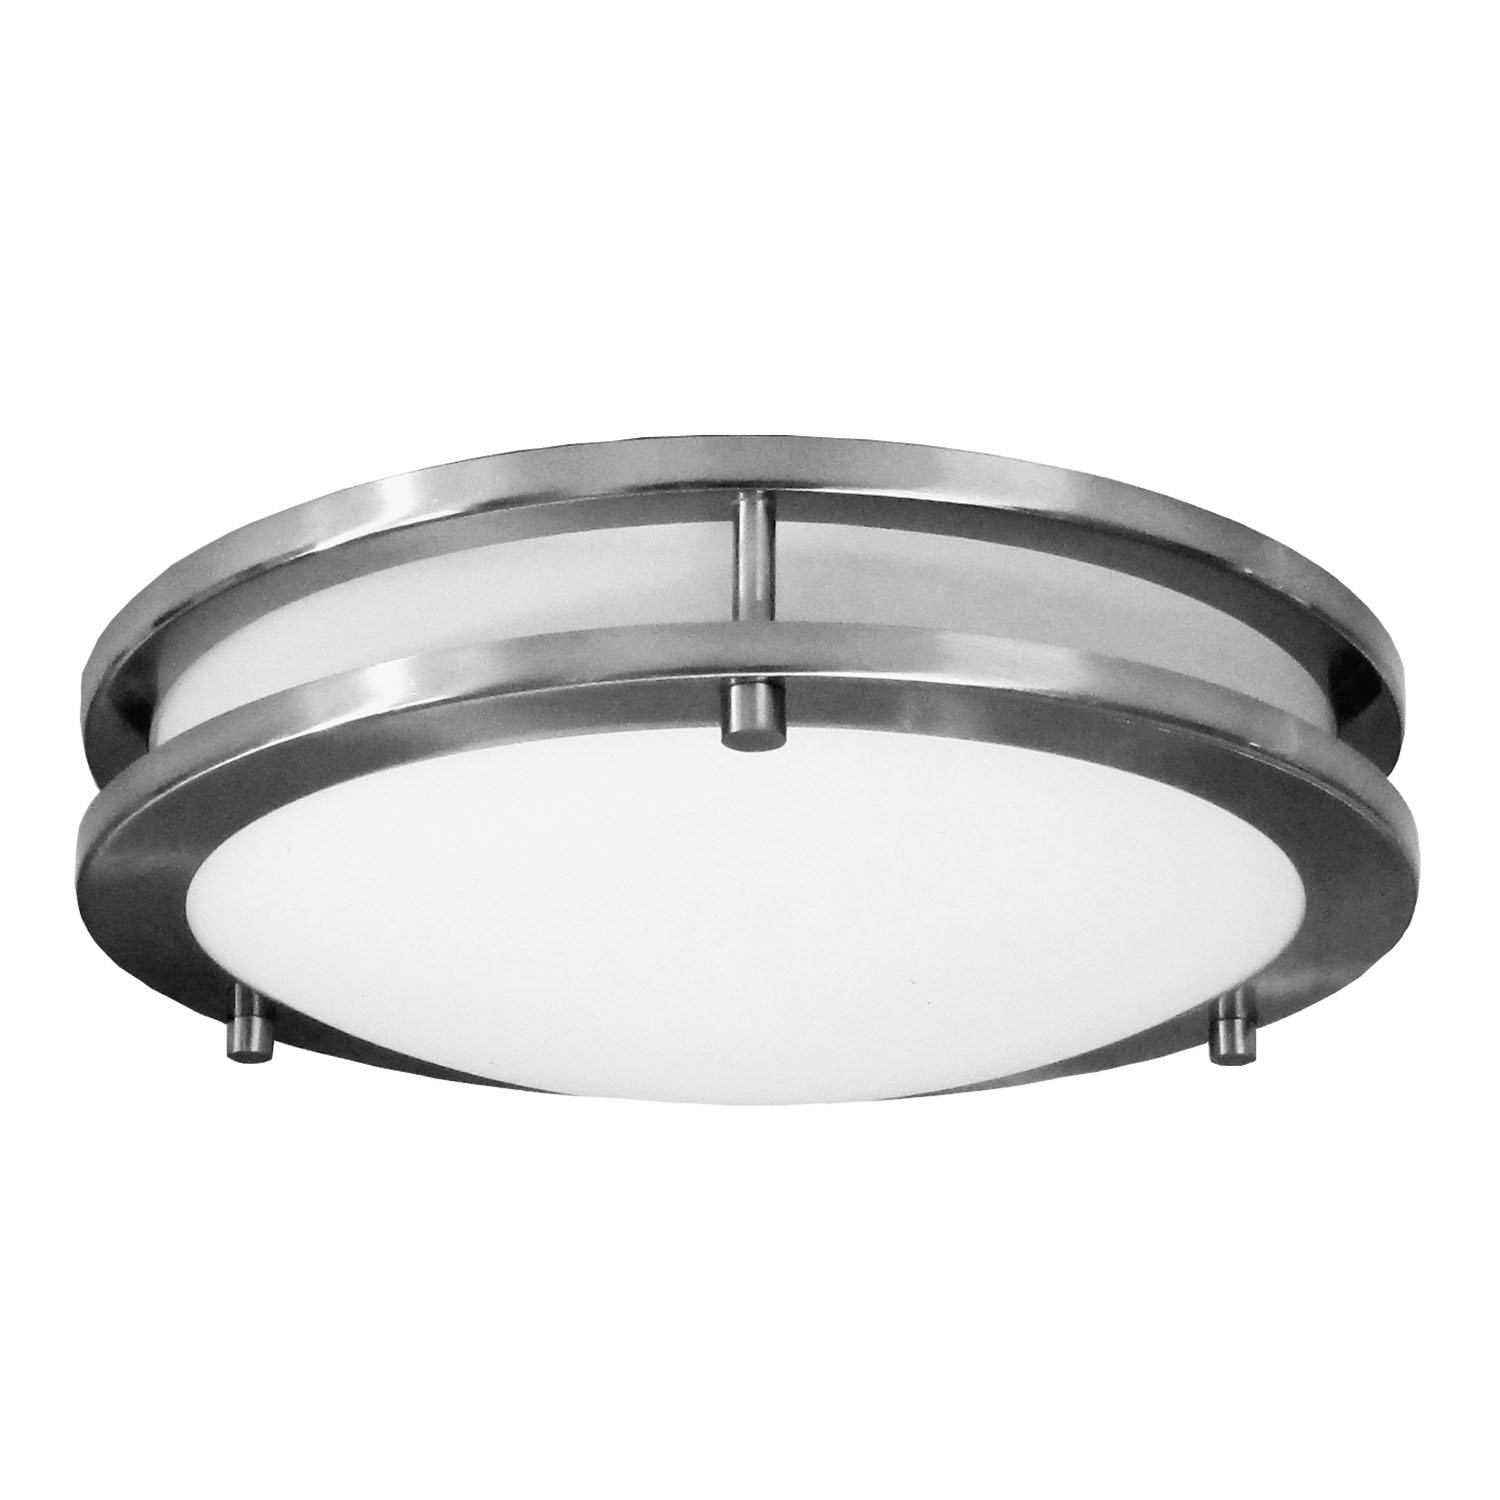 Homeselects 6106 saturn flush mount with alabaster glass globe 16 homeselects 6106 saturn flush mount with alabaster glass globe 16 flush mount ceiling light fixtures amazon aloadofball Image collections